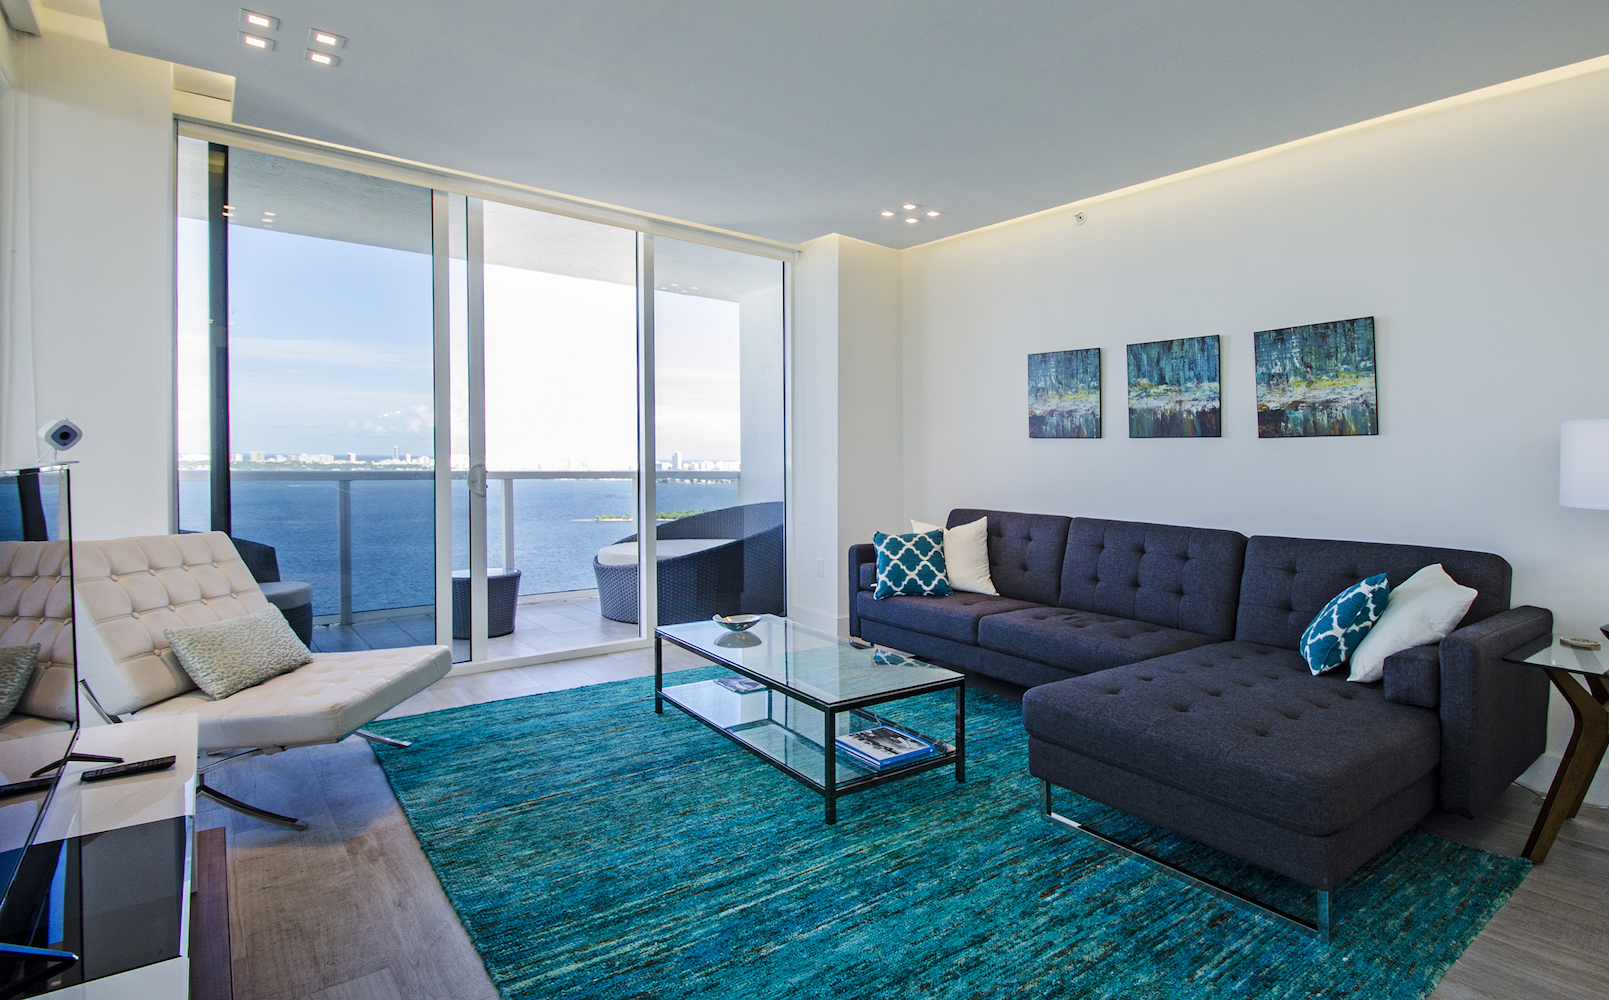 Inside the Baia apartment in Miami couresty of Oasis